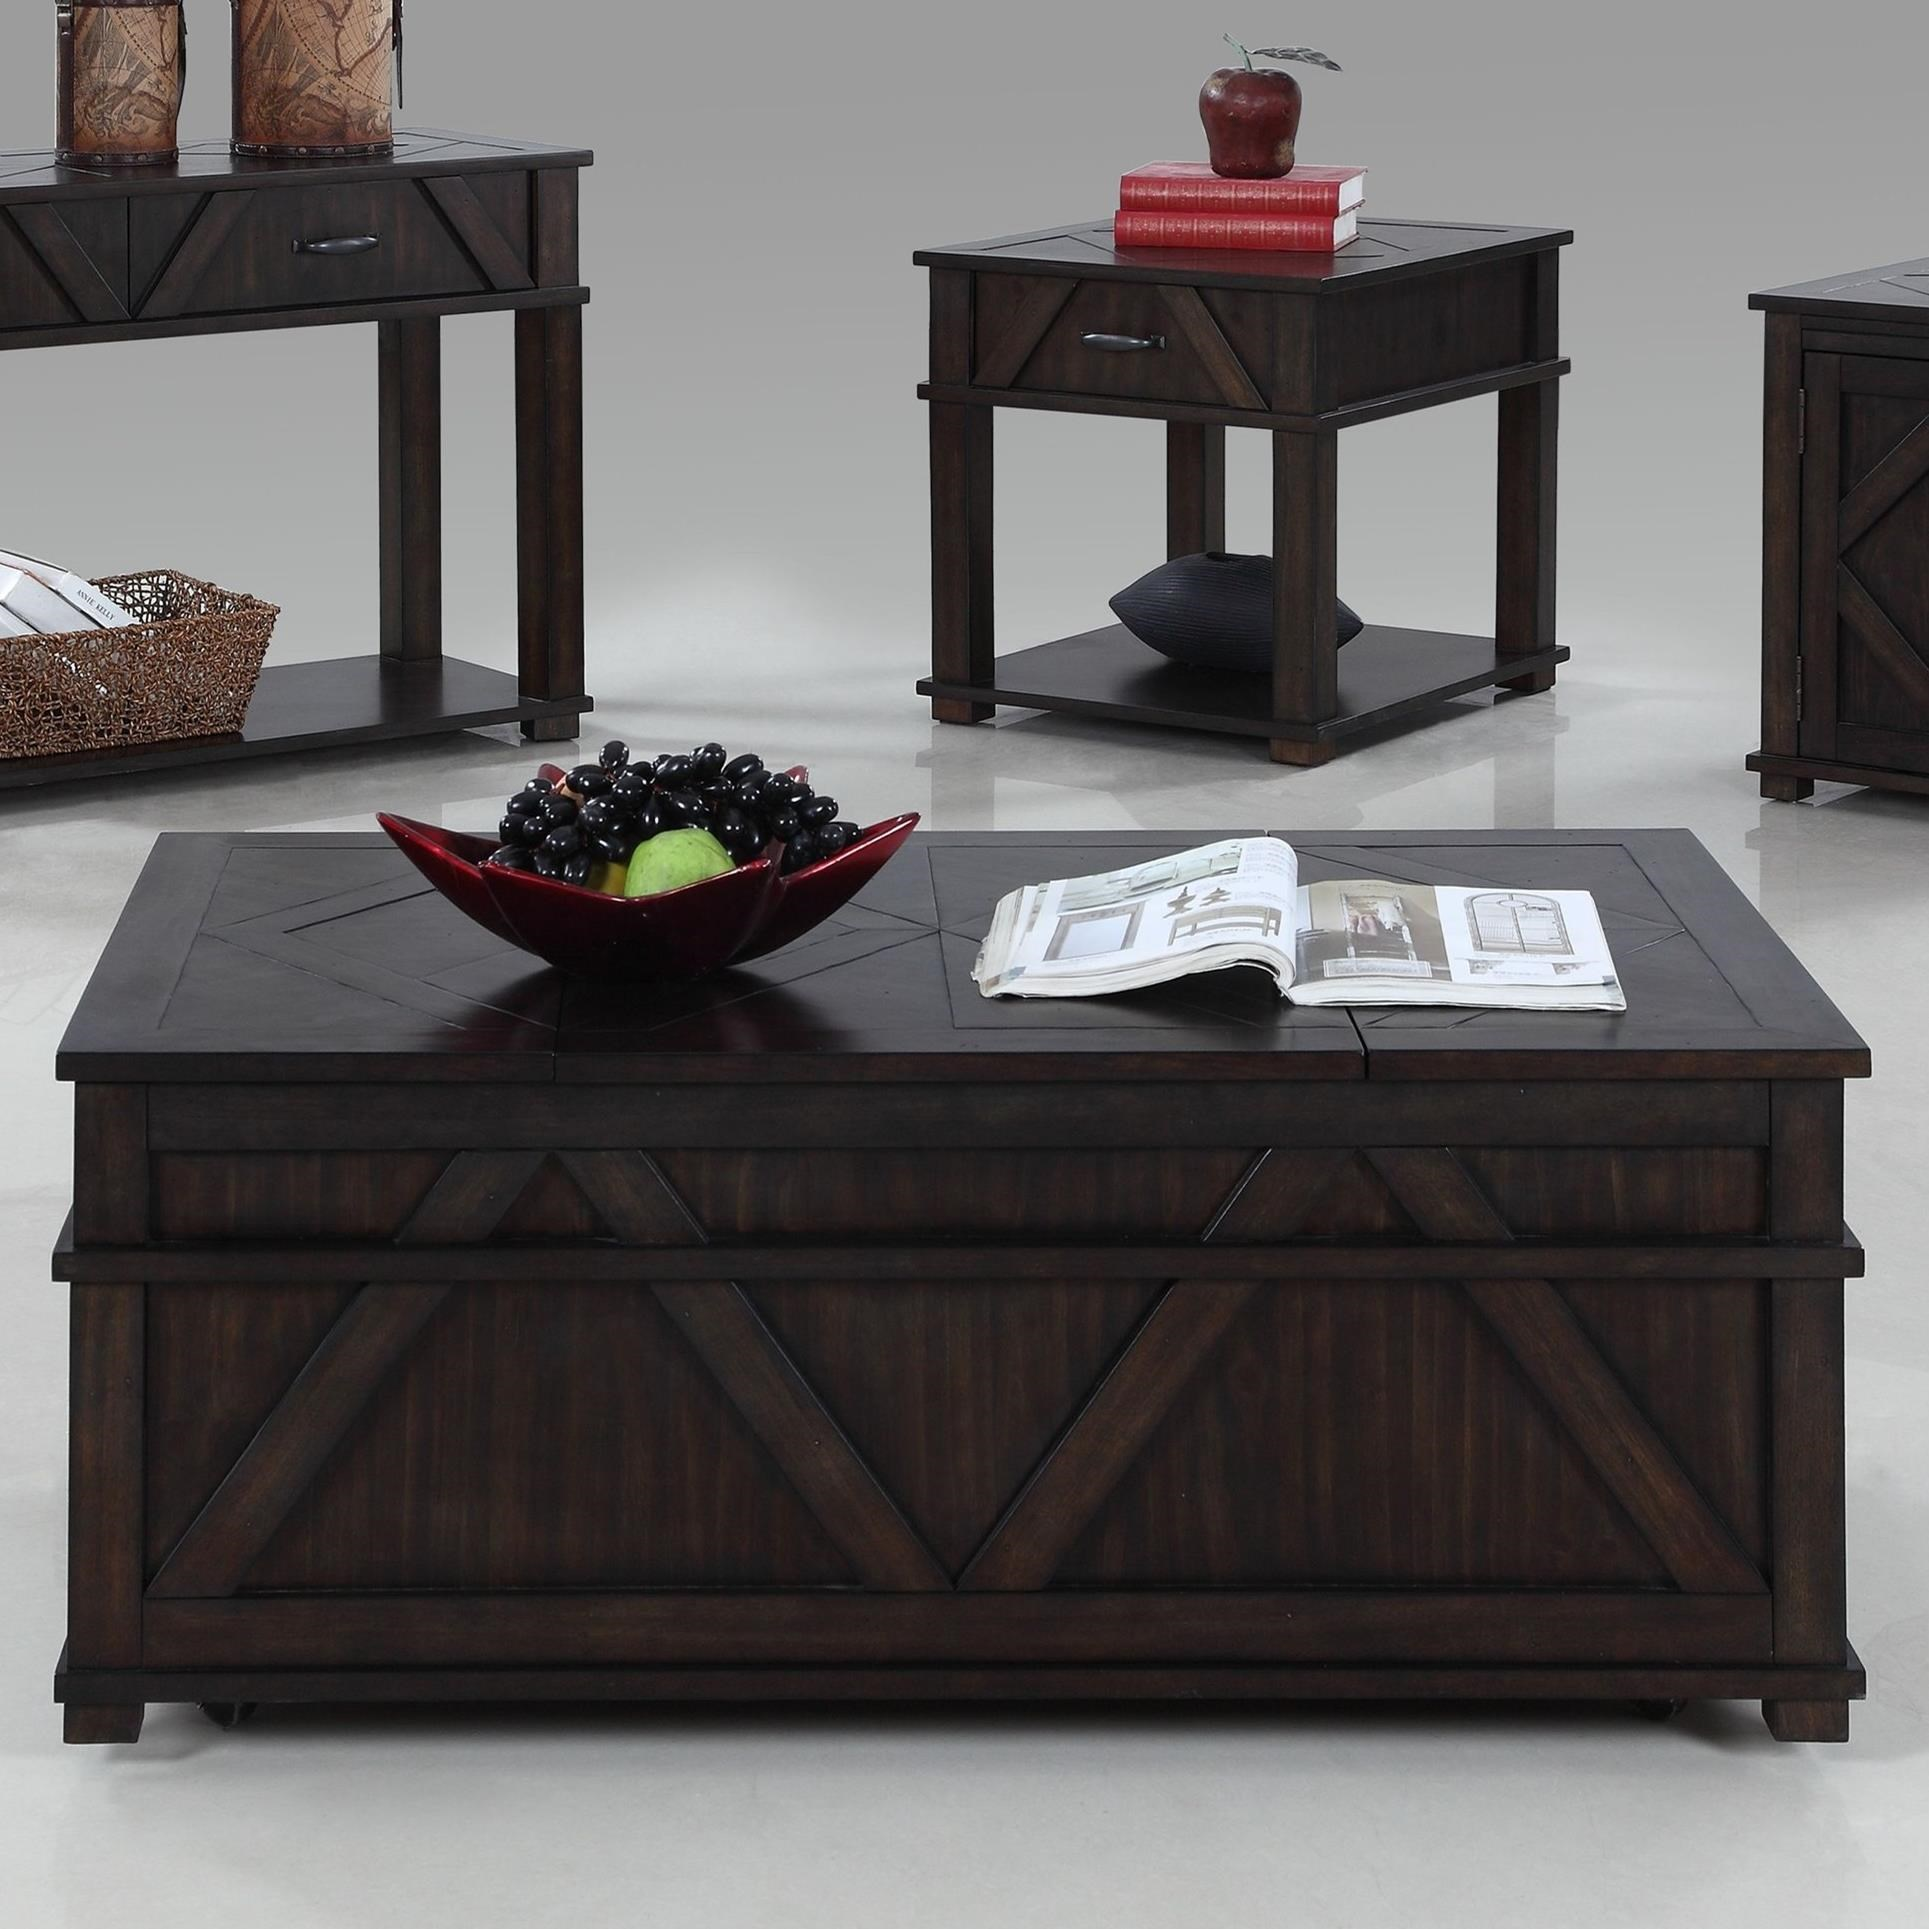 Progressive Furniture Foxcroft Castered Storage Chest Cocktail Table - Item Number: T437-17